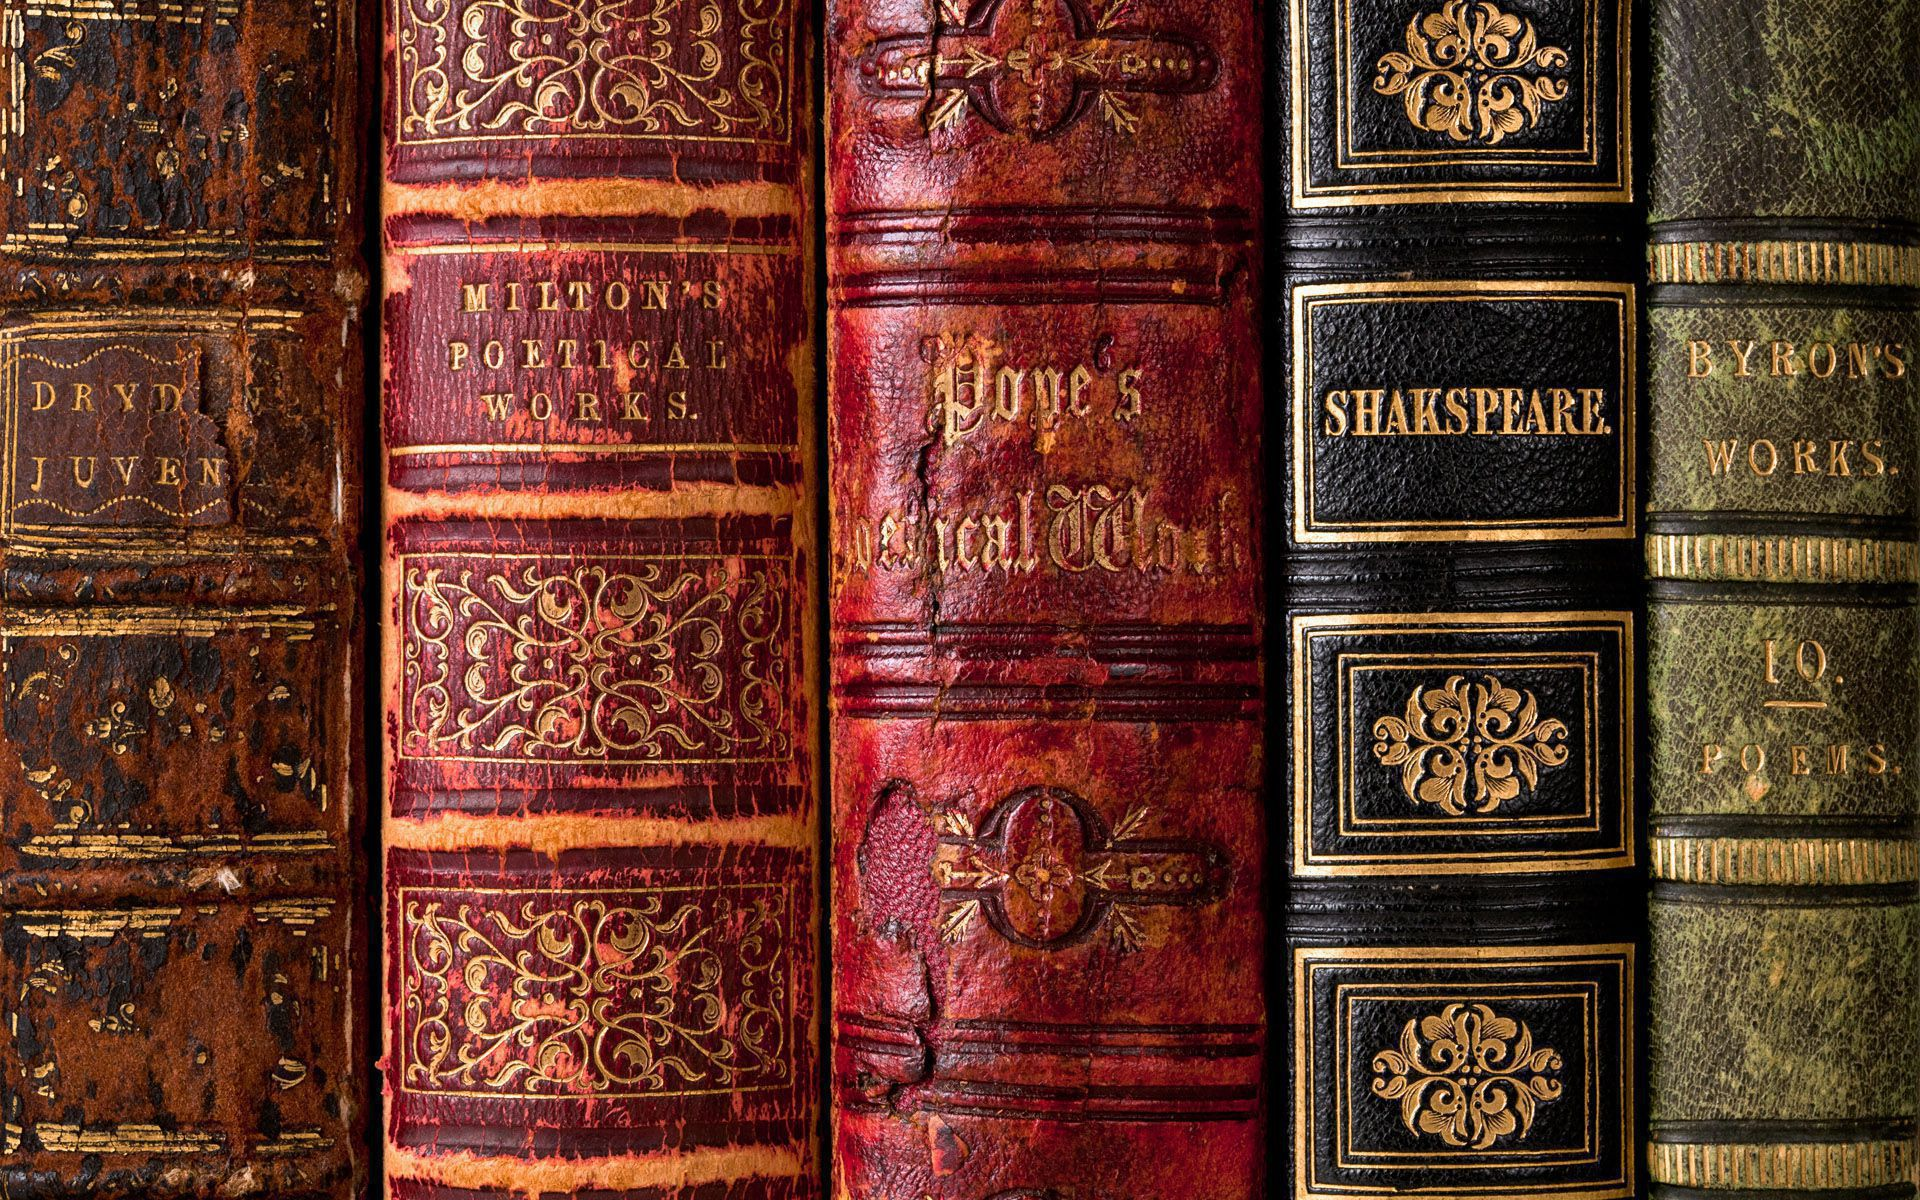 Leather Bindings Of English Poetical Works